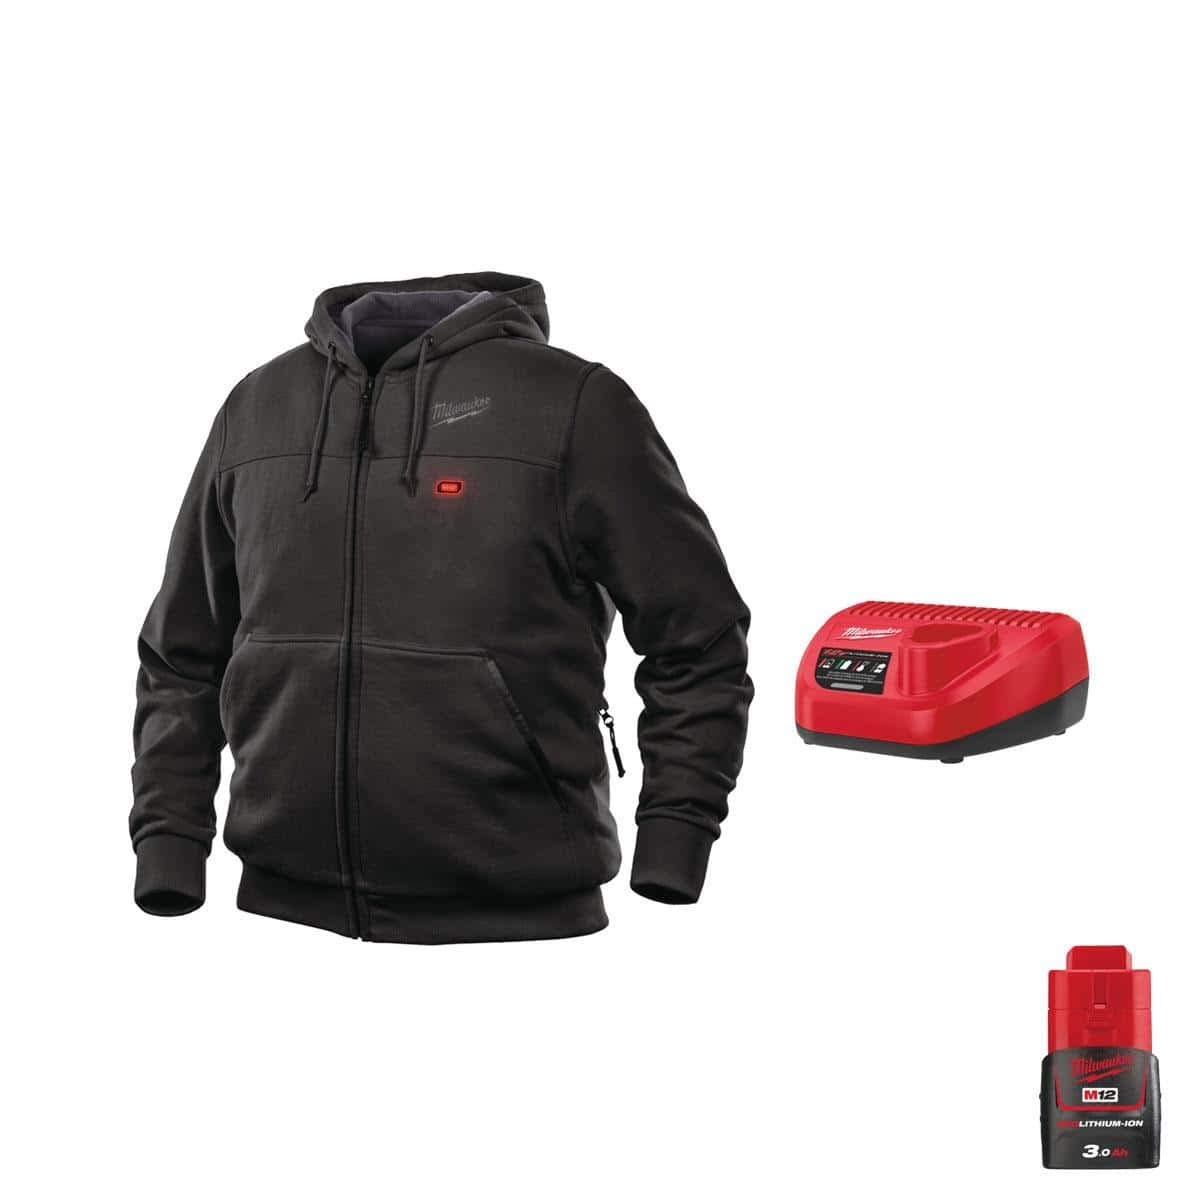 Milwaukee M12 HJLADIES2 Jacket Thermal 12V Heated Woman without Battery